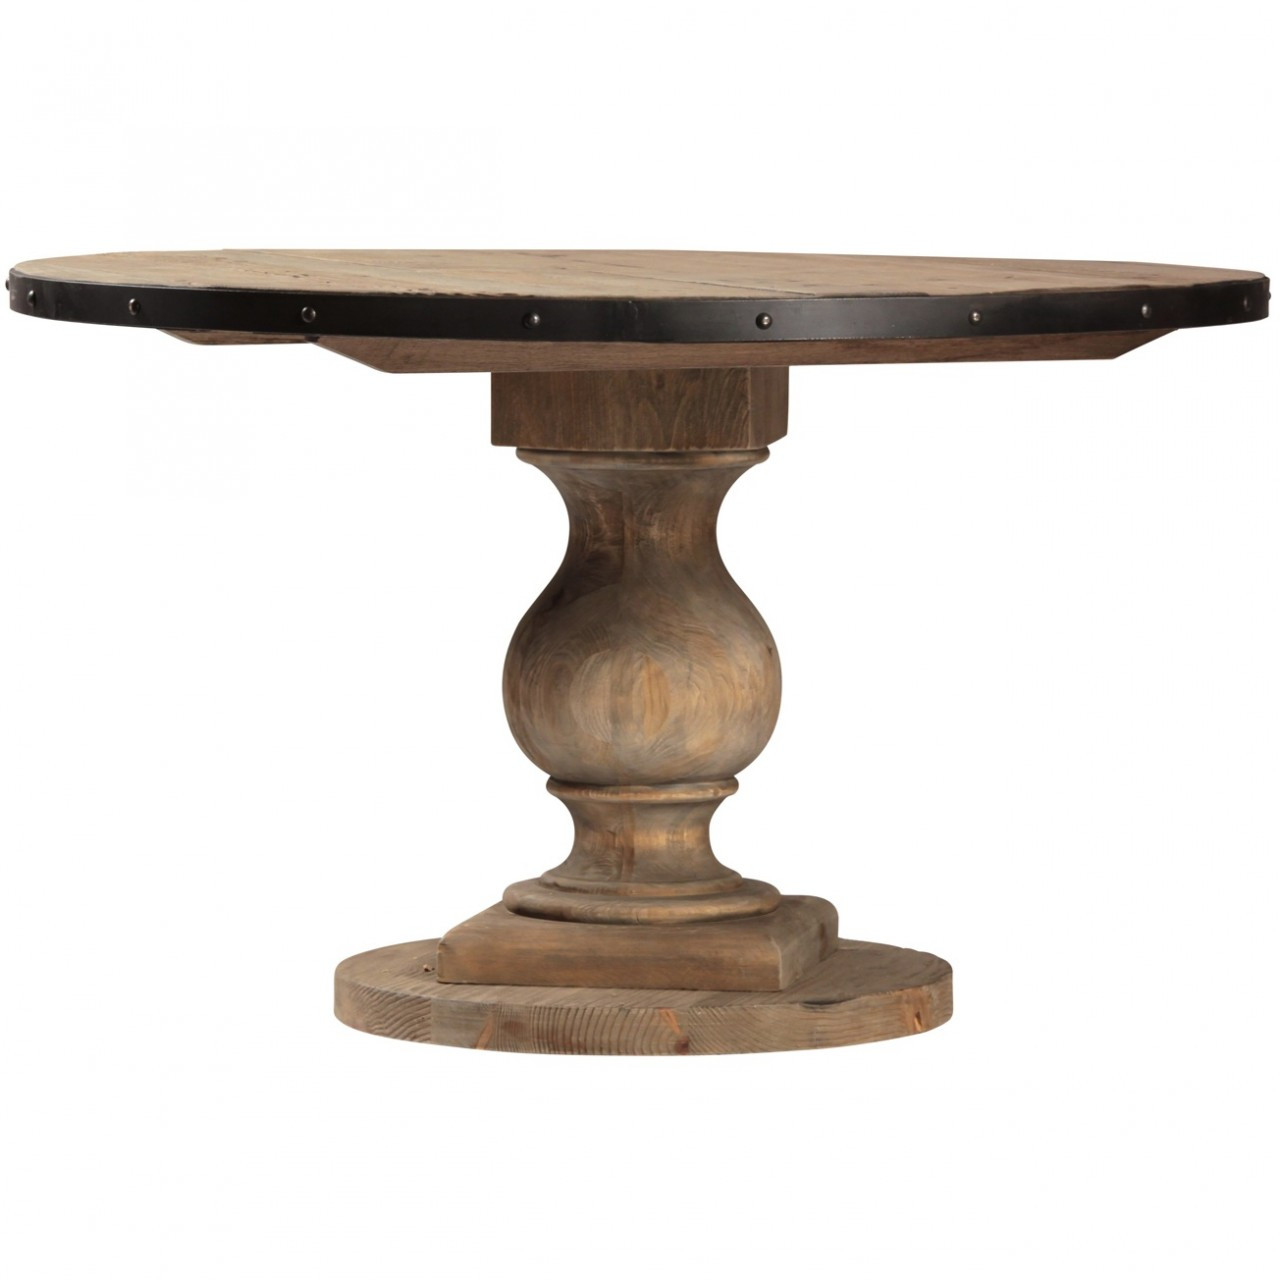 Dining table dining table pedestals base for Dining table base